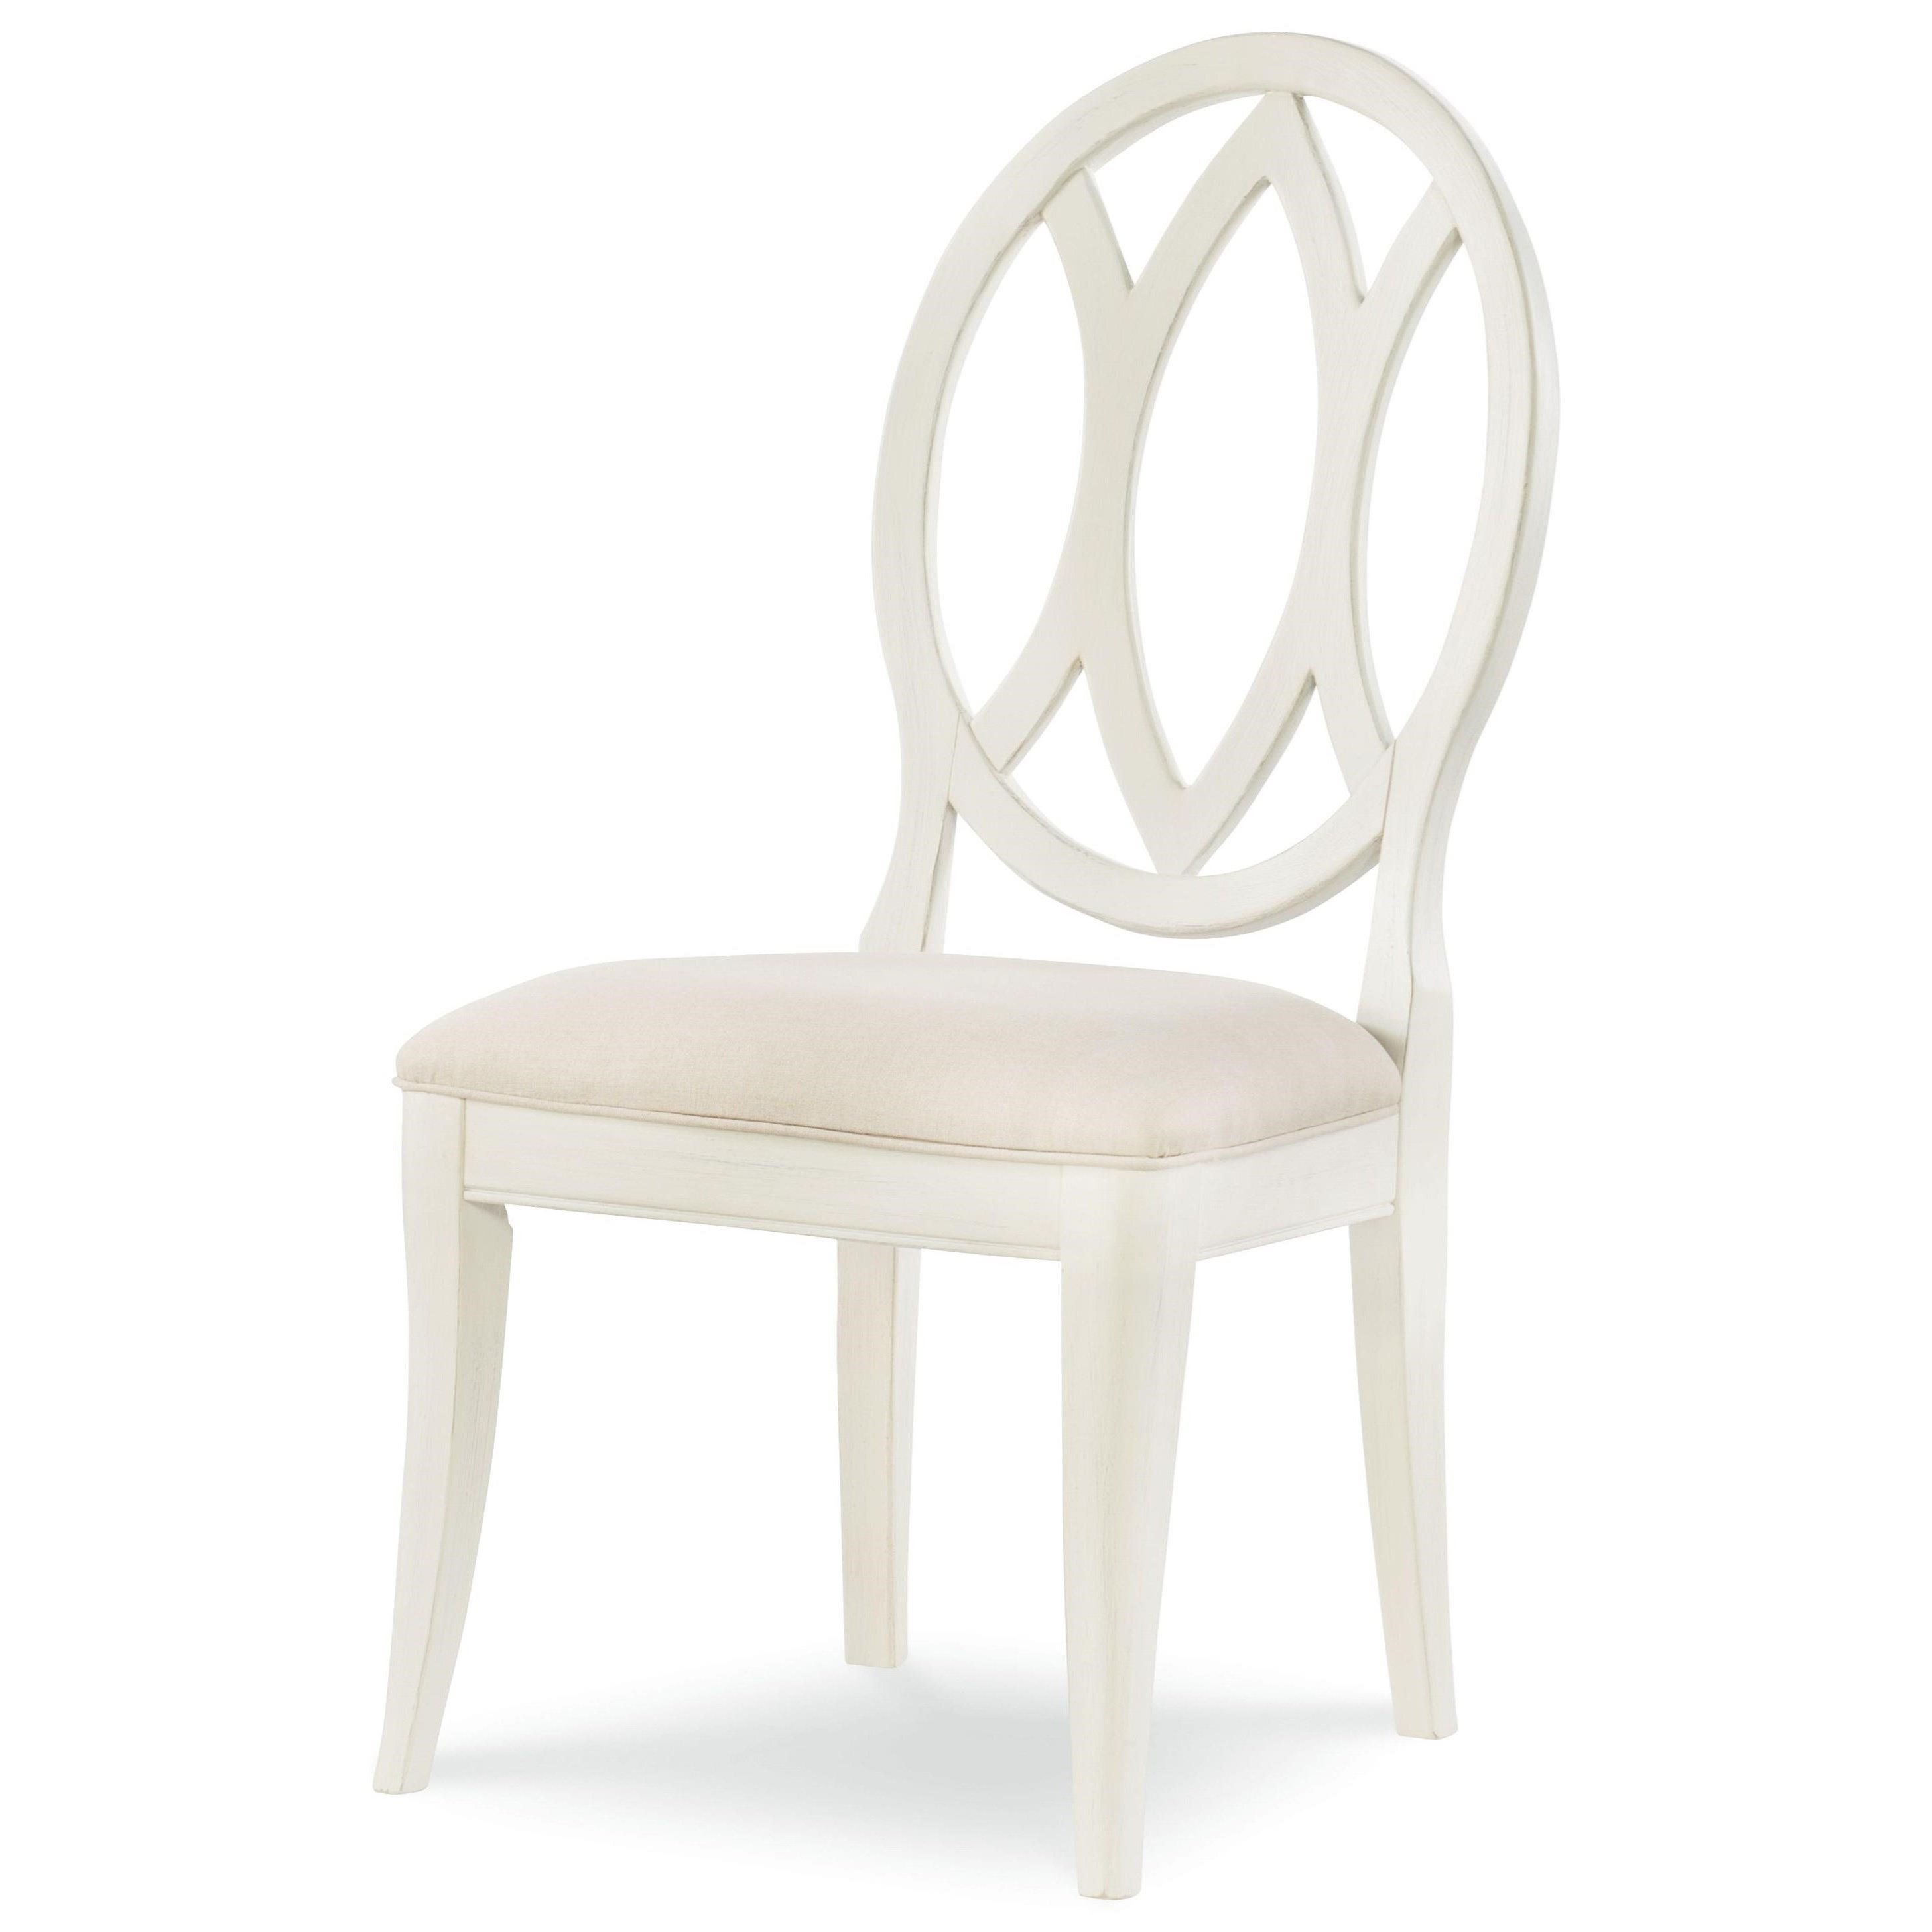 Rachael Ray Home by Legacy Classic Everyday Dining Dining Side Chair - Item Number: 7004-140 KD